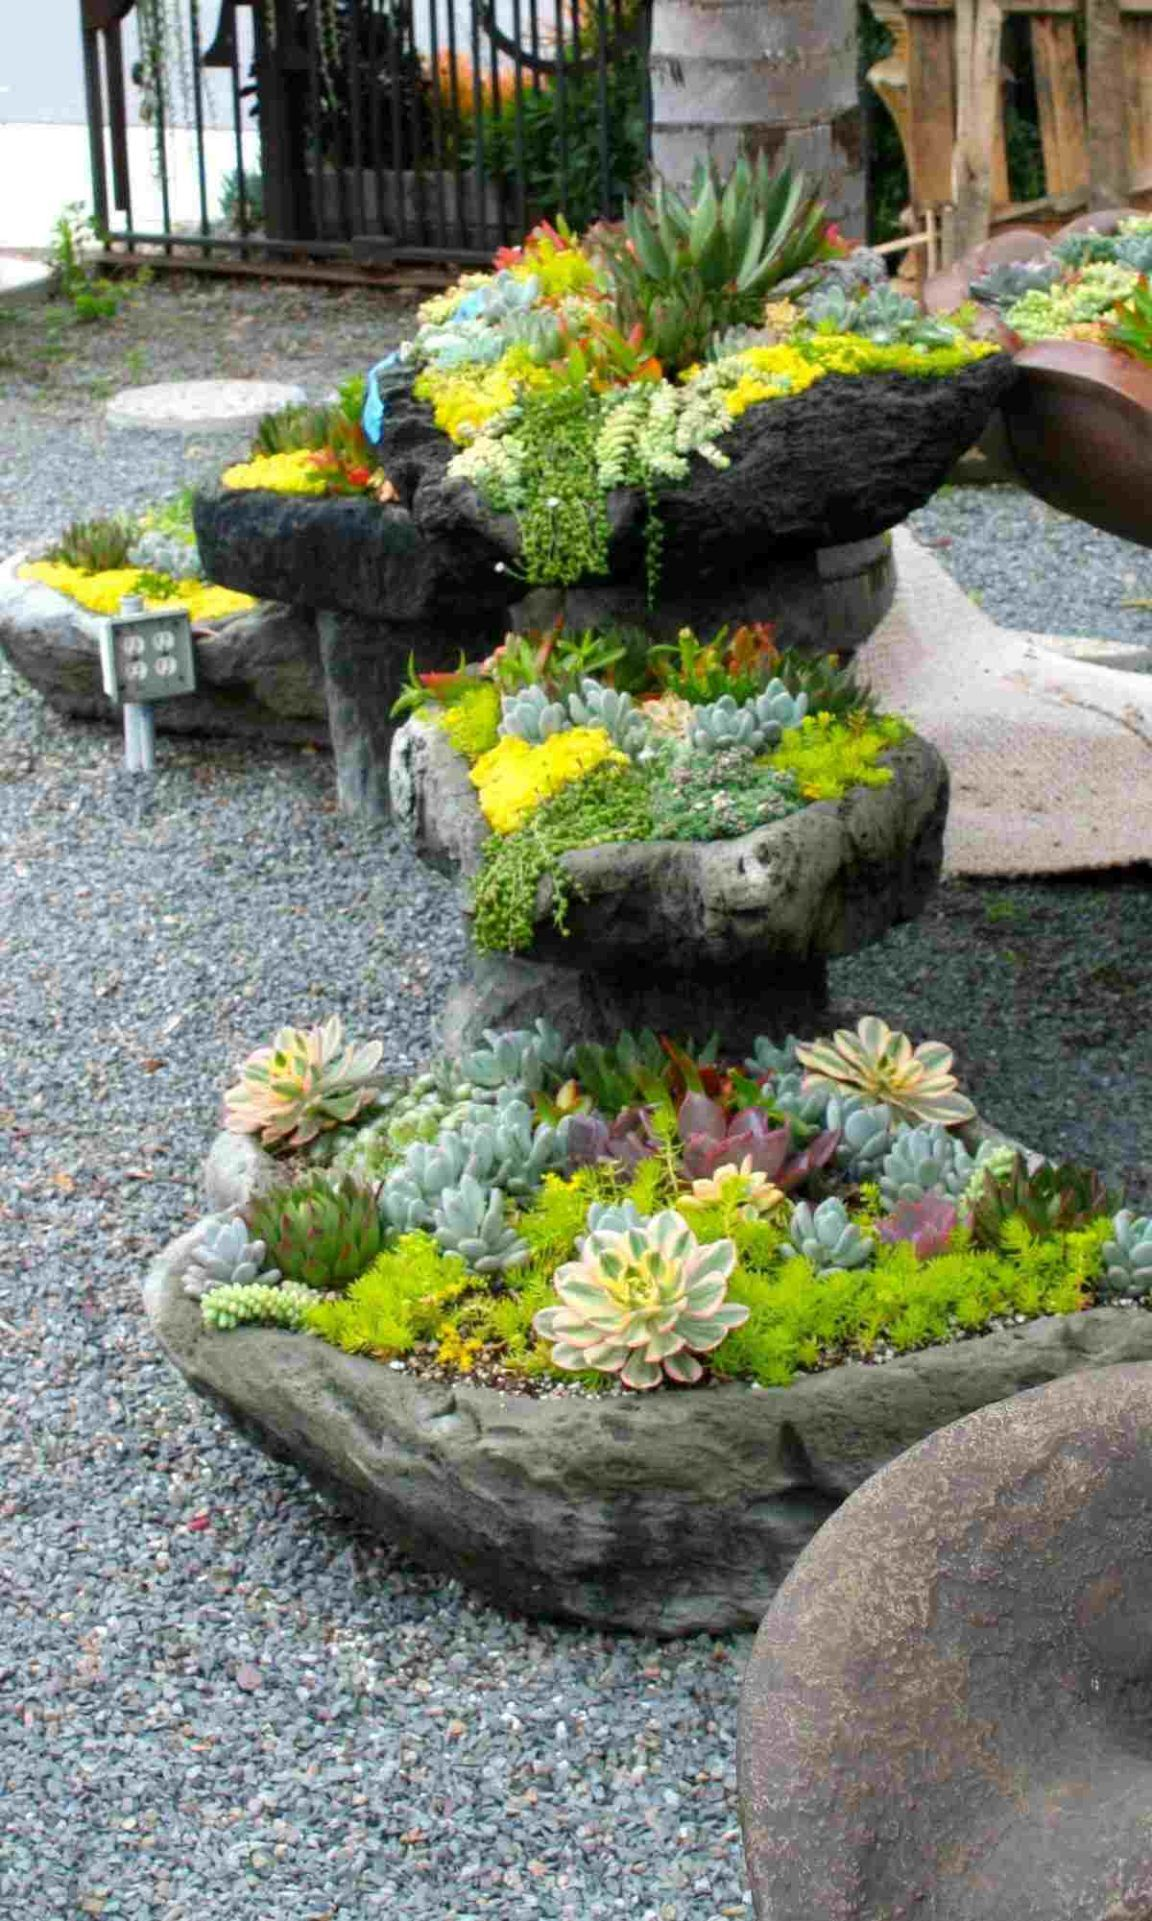 30+ AMAZING DIY Front Yard Landscaping Ideas and Garden Designs is part of garden Decoration Landscapes - Home and Garden, DIY Projects, Interior Design